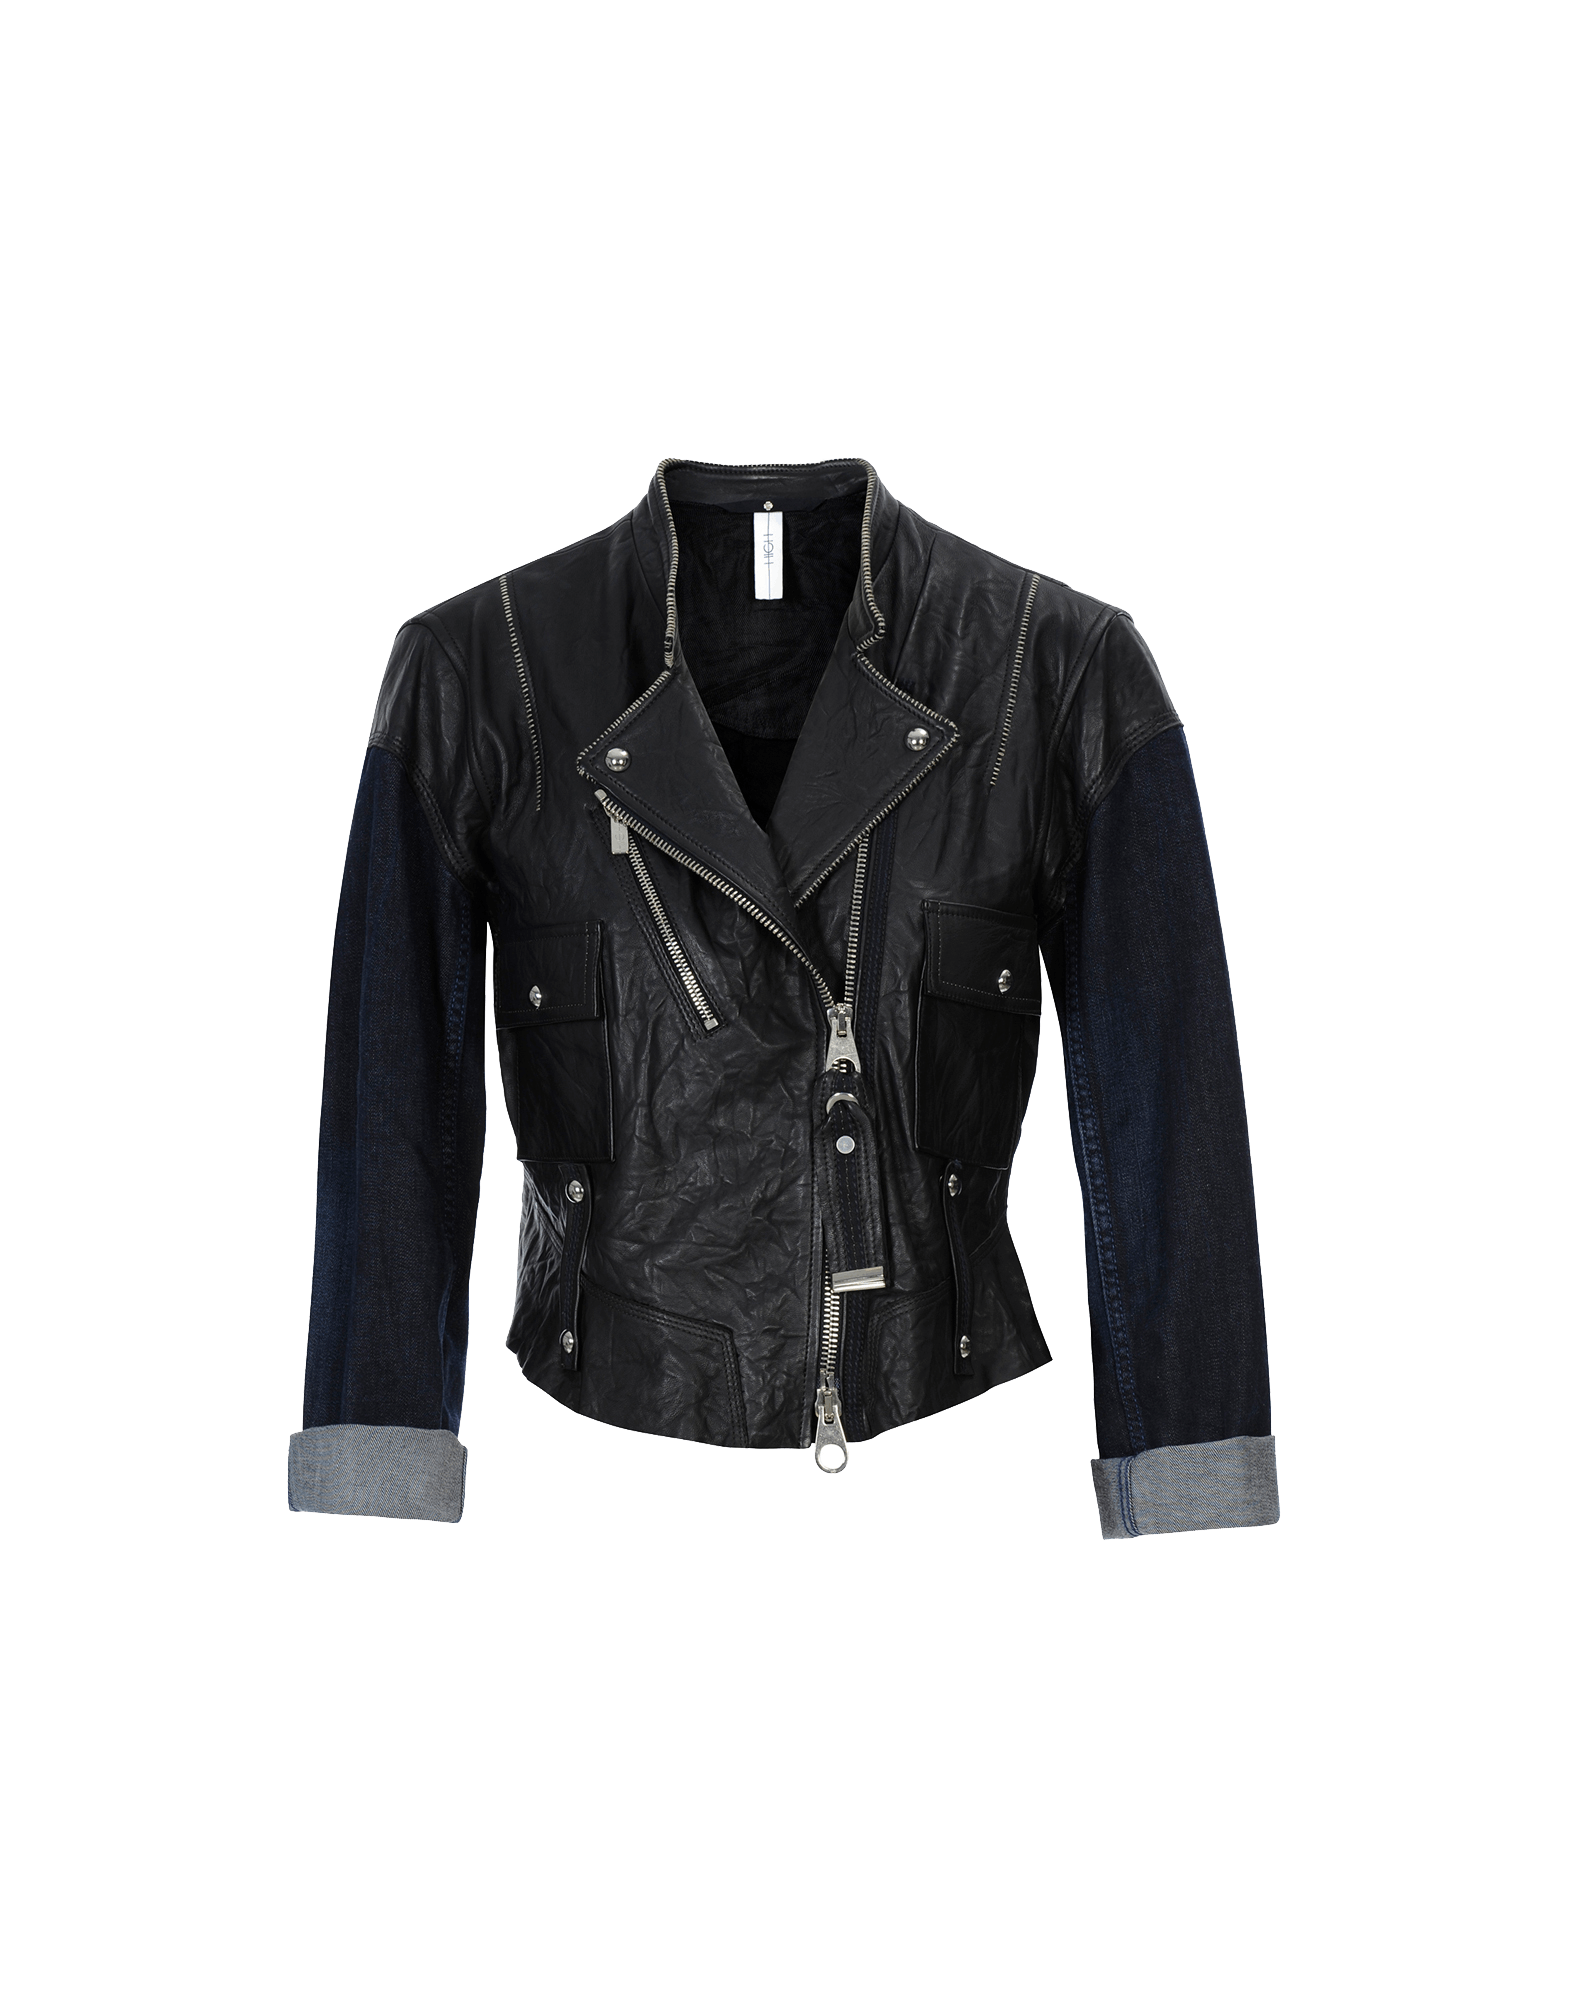 44cdc883 PROFOUND: Leather and denim jacket